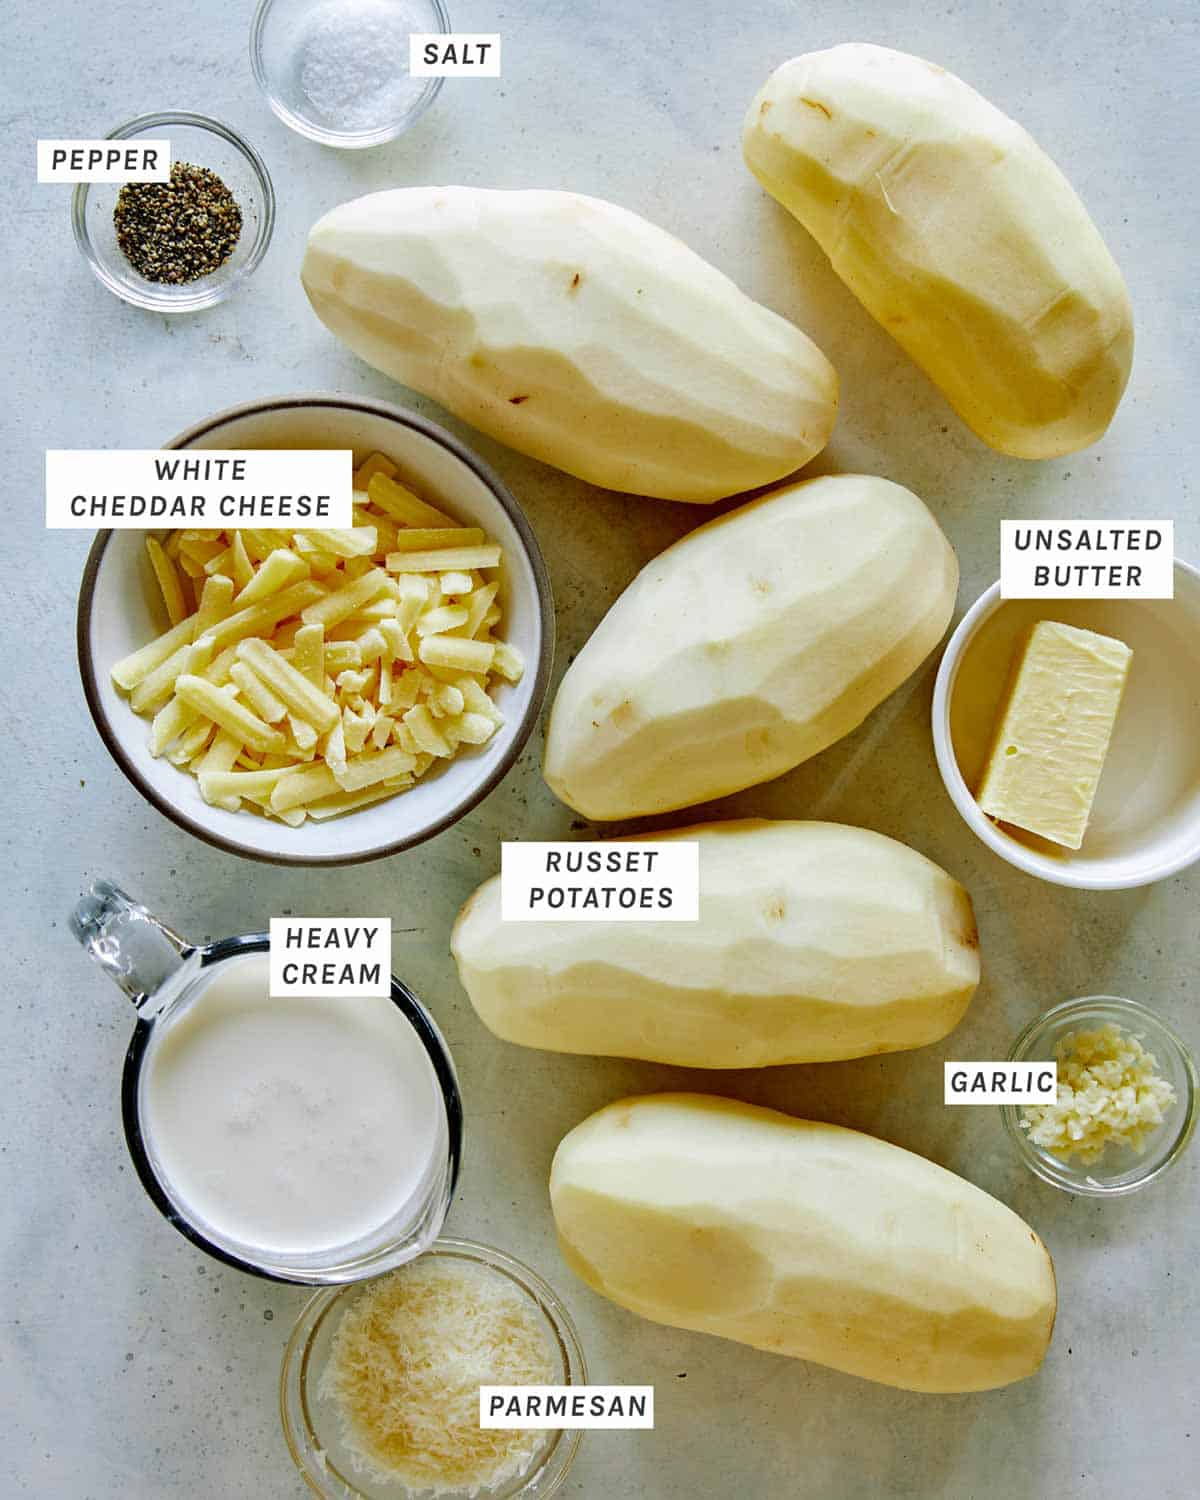 Ingredients for a cheesy potato gratin all laid out on a kitchen counter.